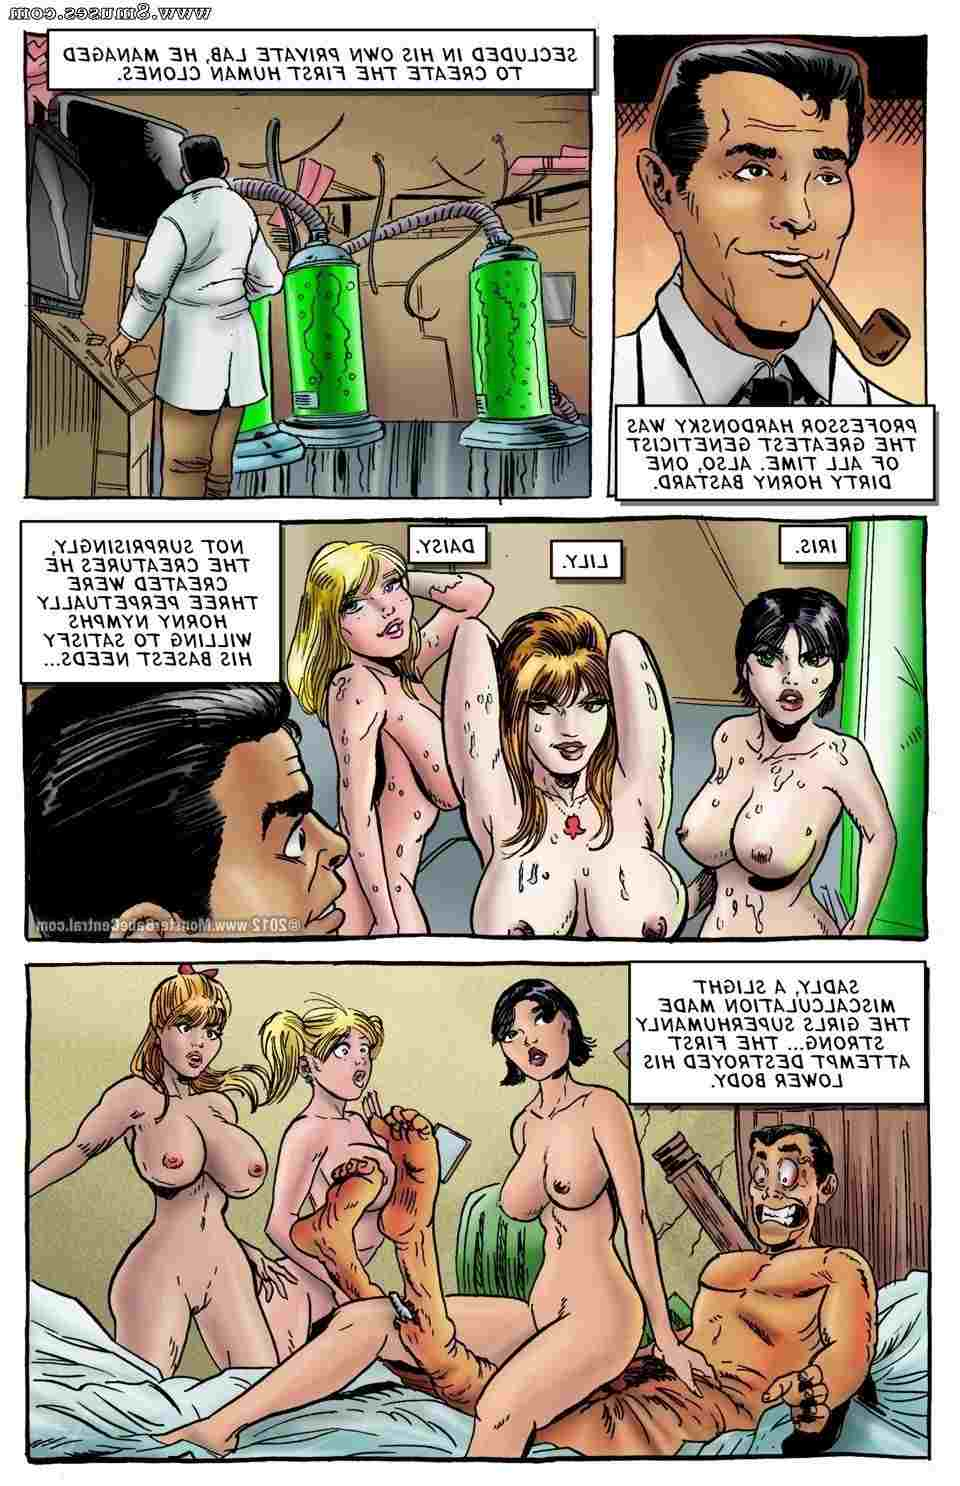 Central-Comics/Monster-Babe-Central/Monster-Channel Monster_Channel__8muses_-_Sex_and_Porn_Comics_2.jpg